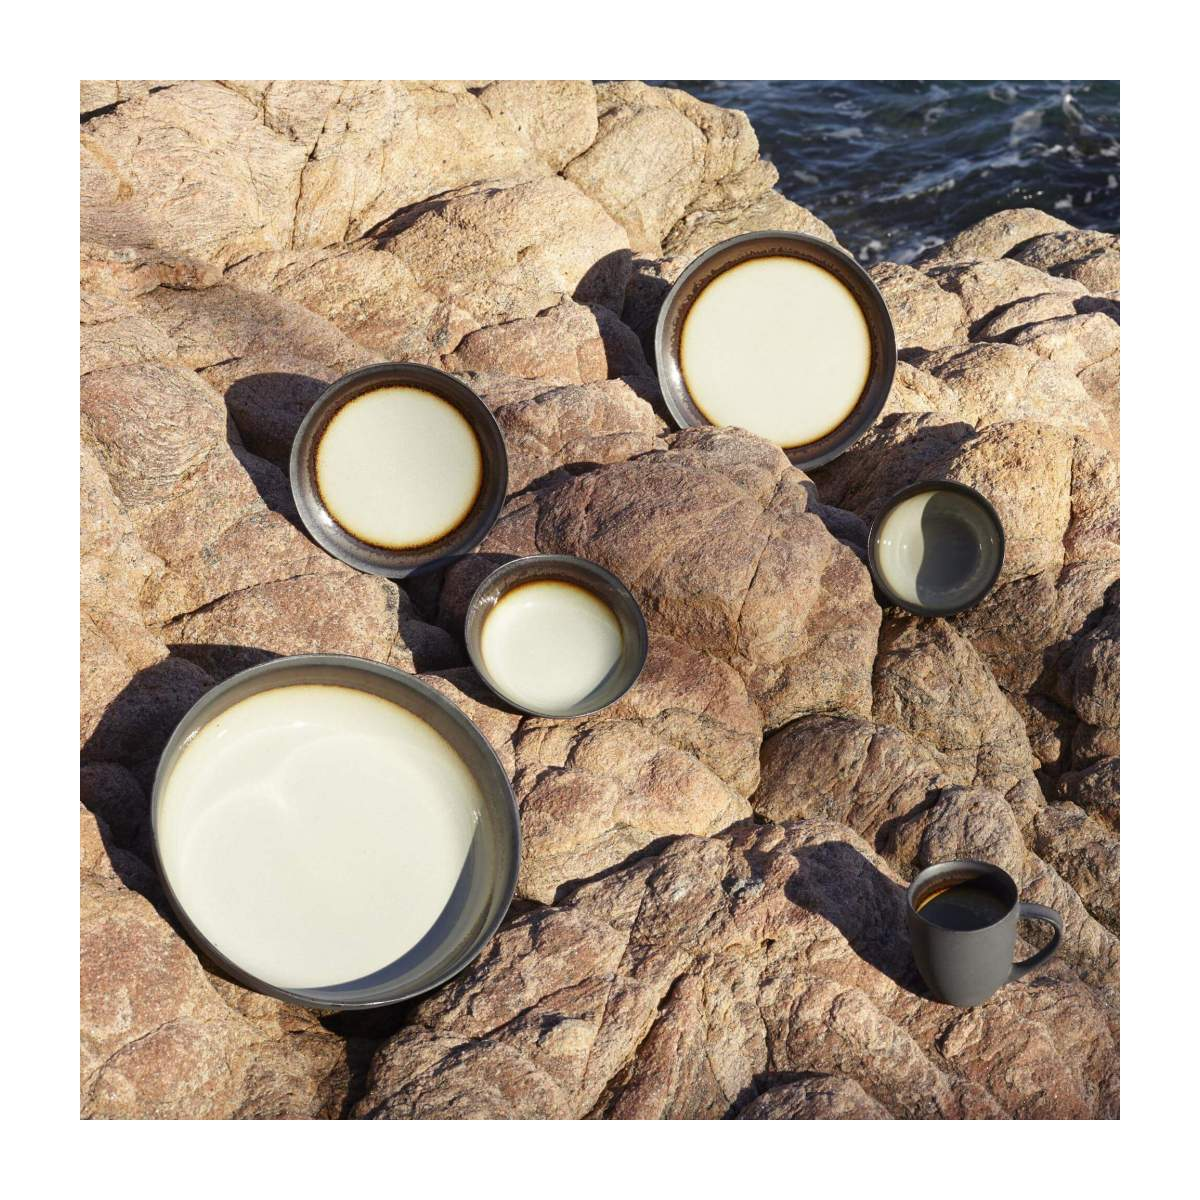 Dessert plate made of sandstone 22cm, grey and brown n°4